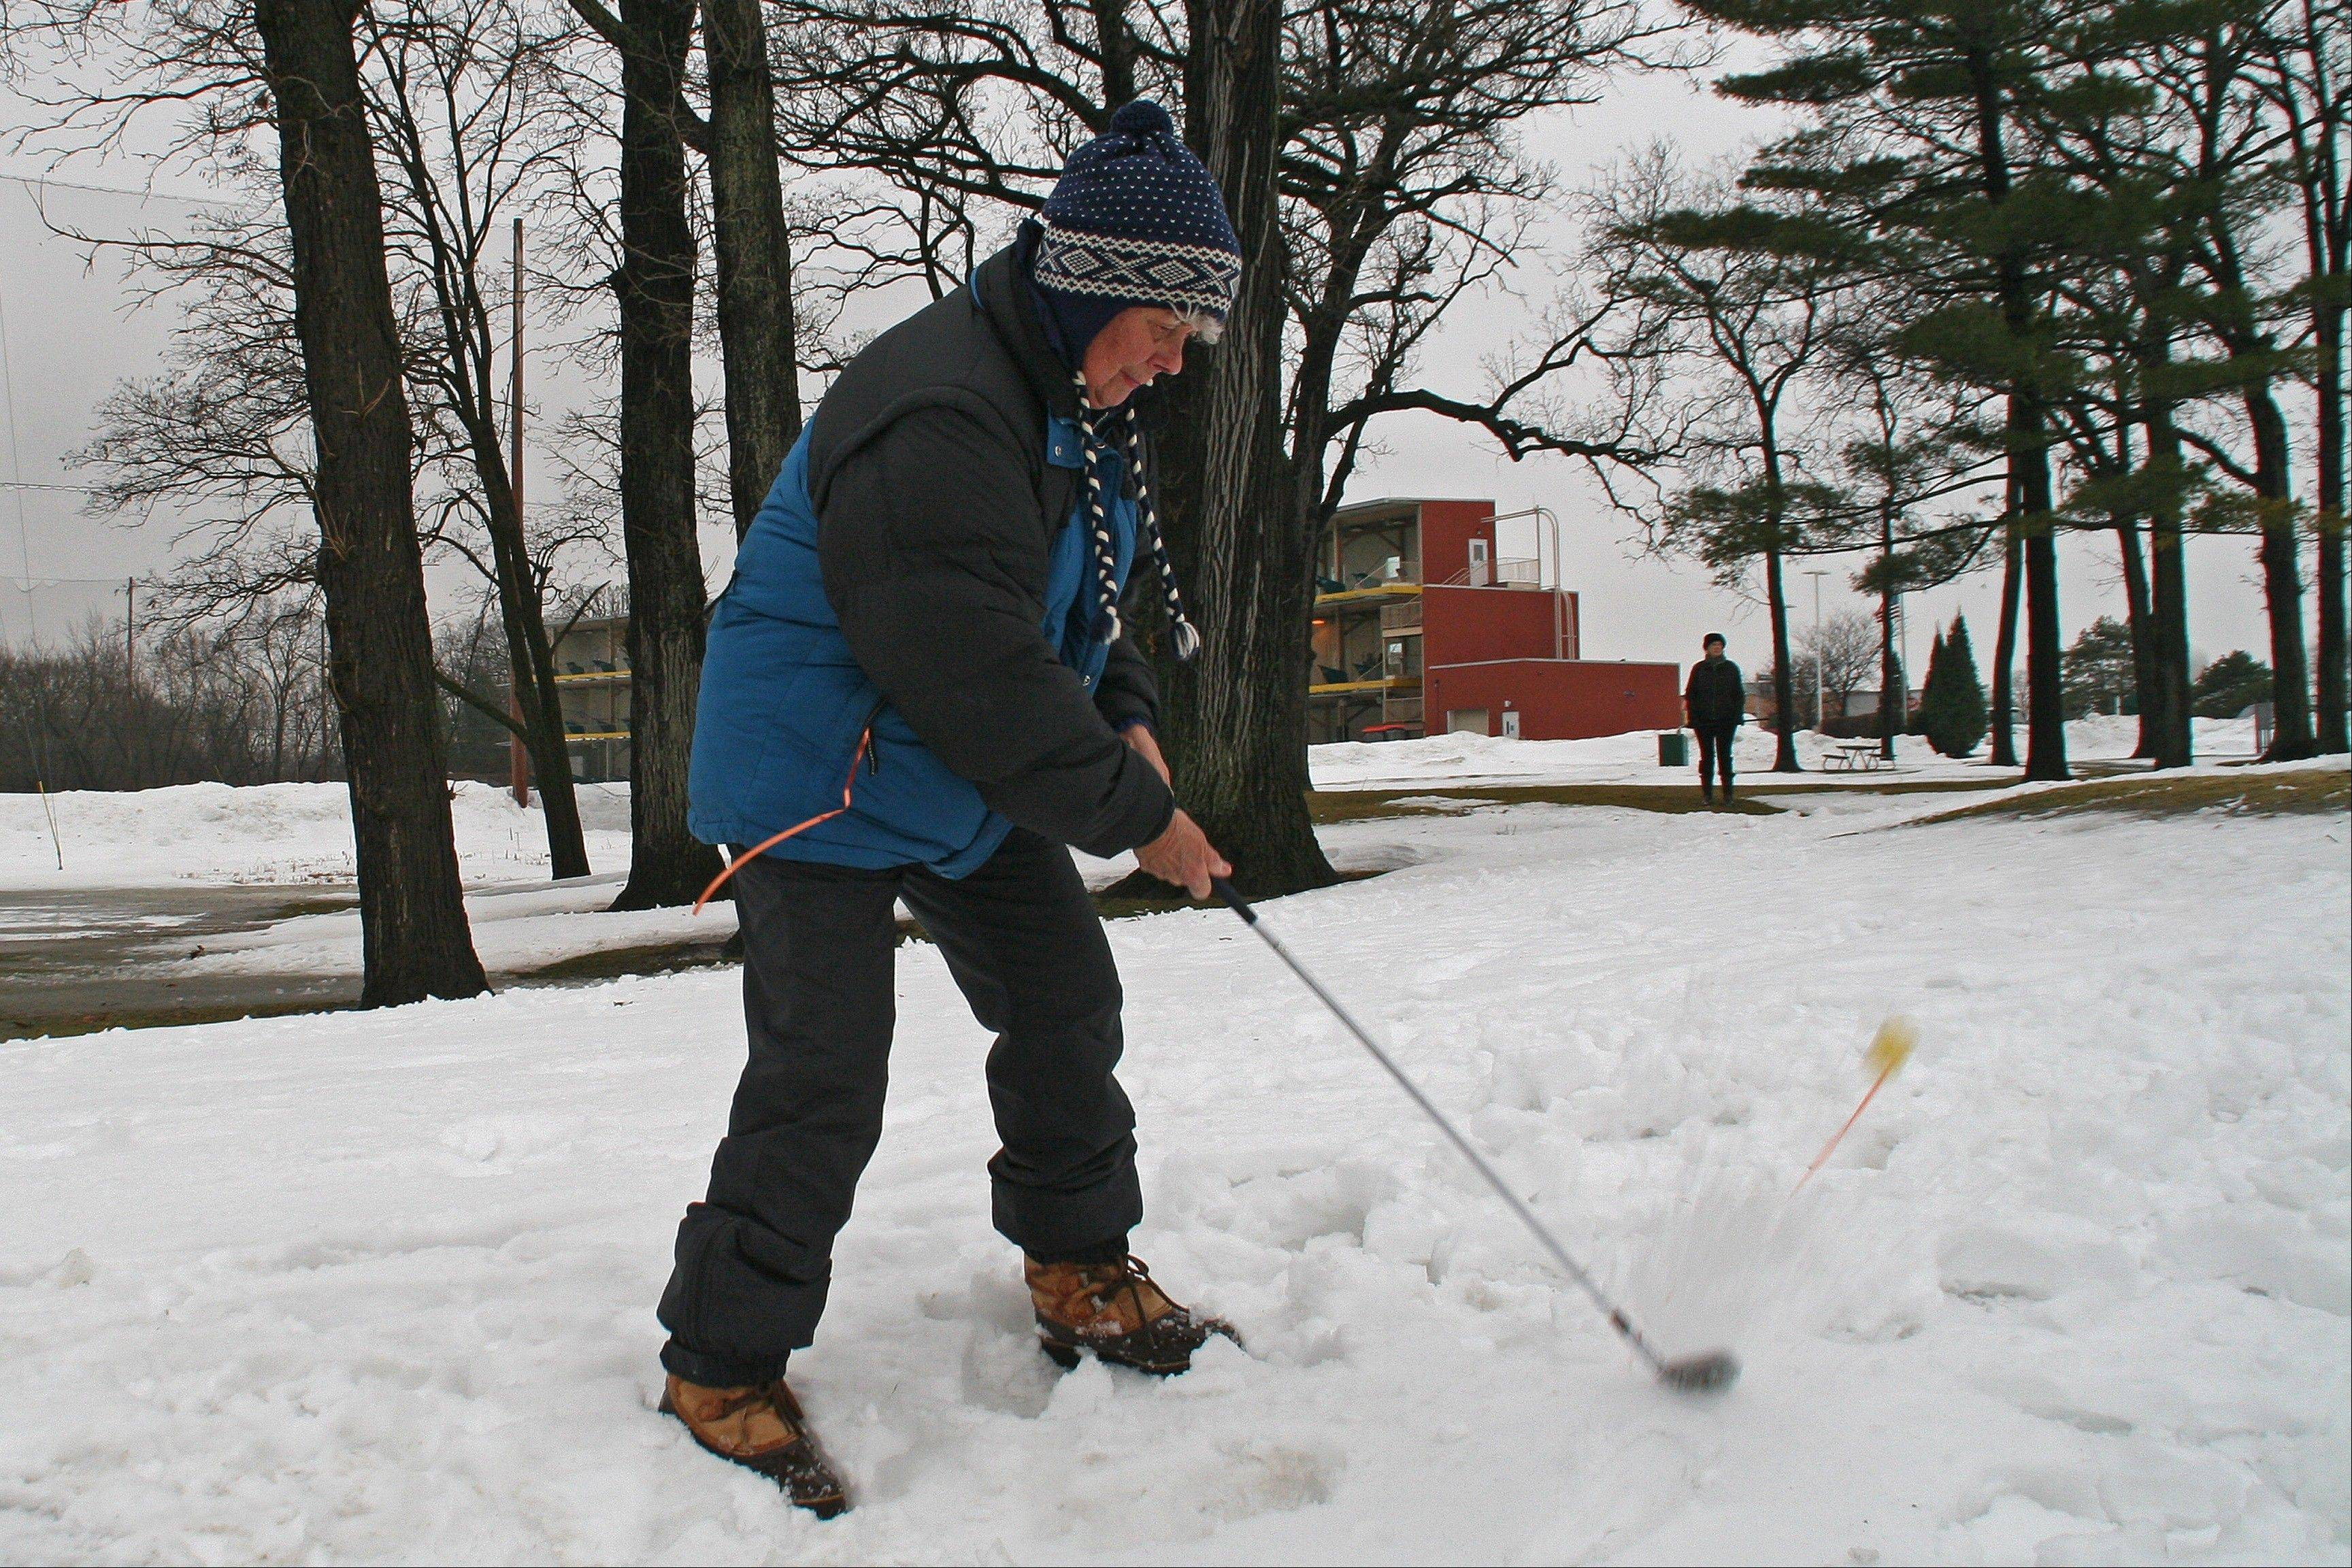 Marianne Balow pops her ball up and out of a snowdrift at the annual Des Plaines Park District Chili Open on Jan. 11, at the Golf Center Des Plaines. The yellow Srixon balls were drilled through and tied with orange curling ribbon to make them easier to find on the course.